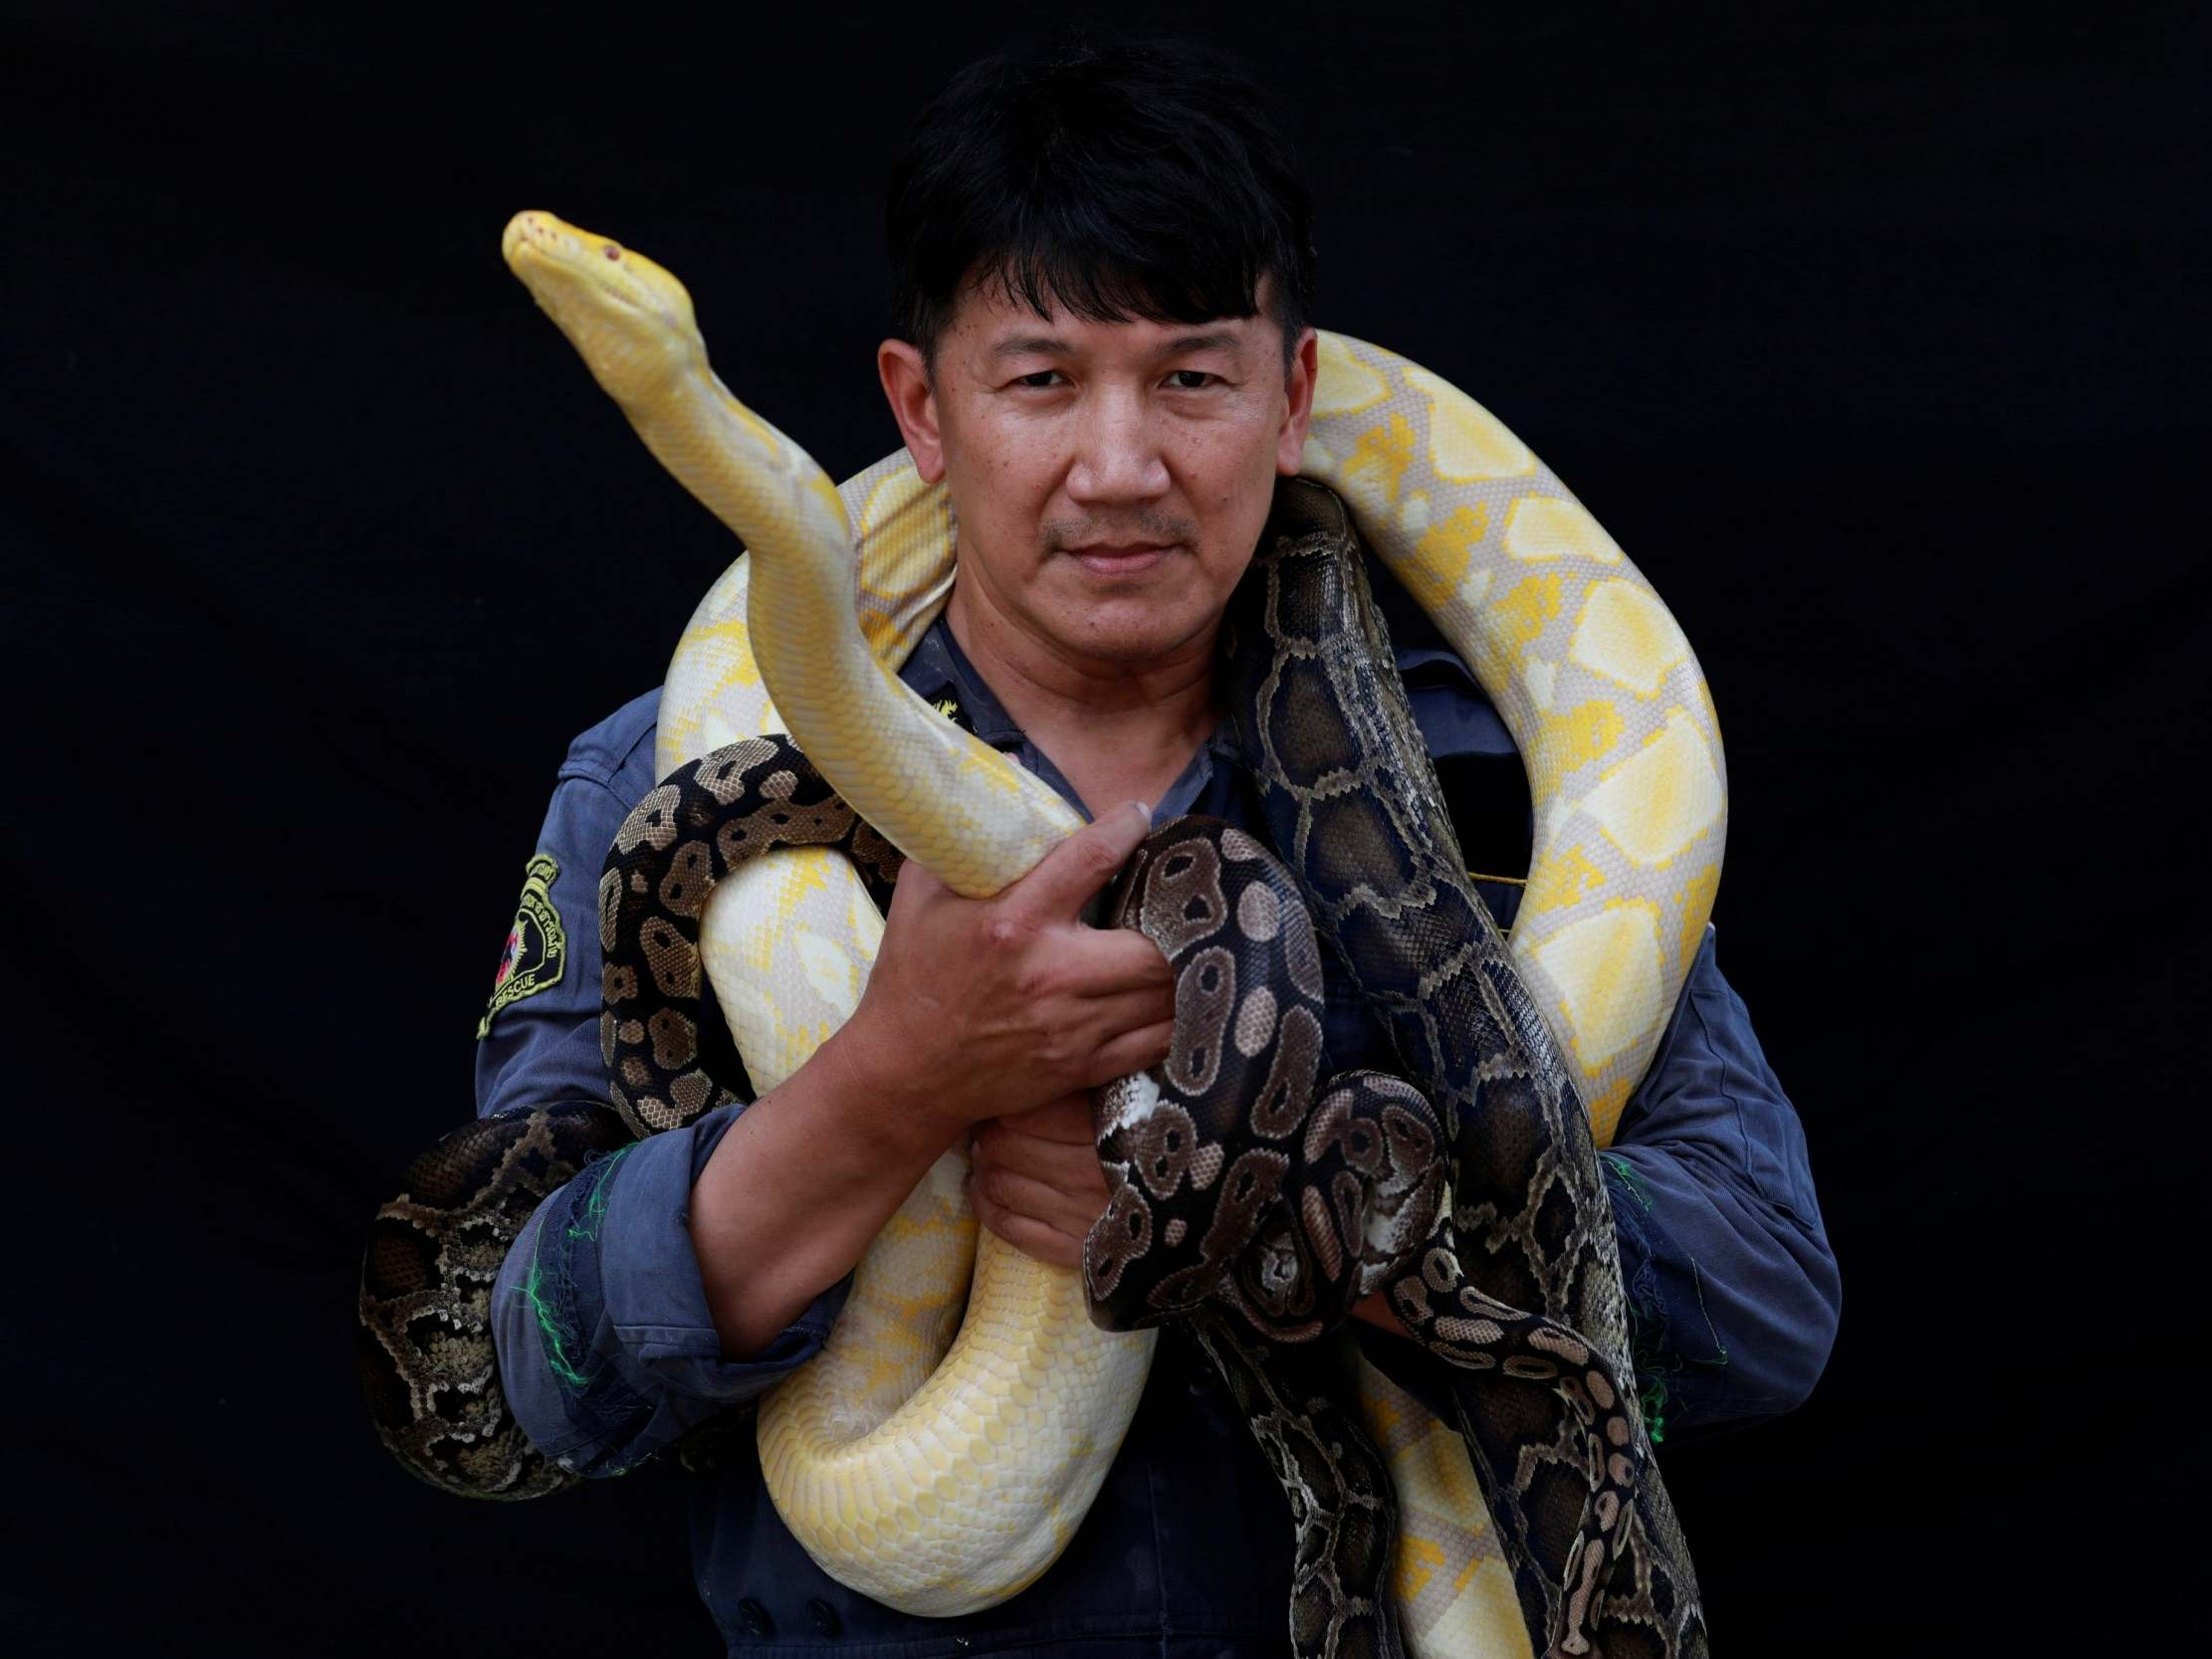 Snakes - latest news, breaking stories and comment - The